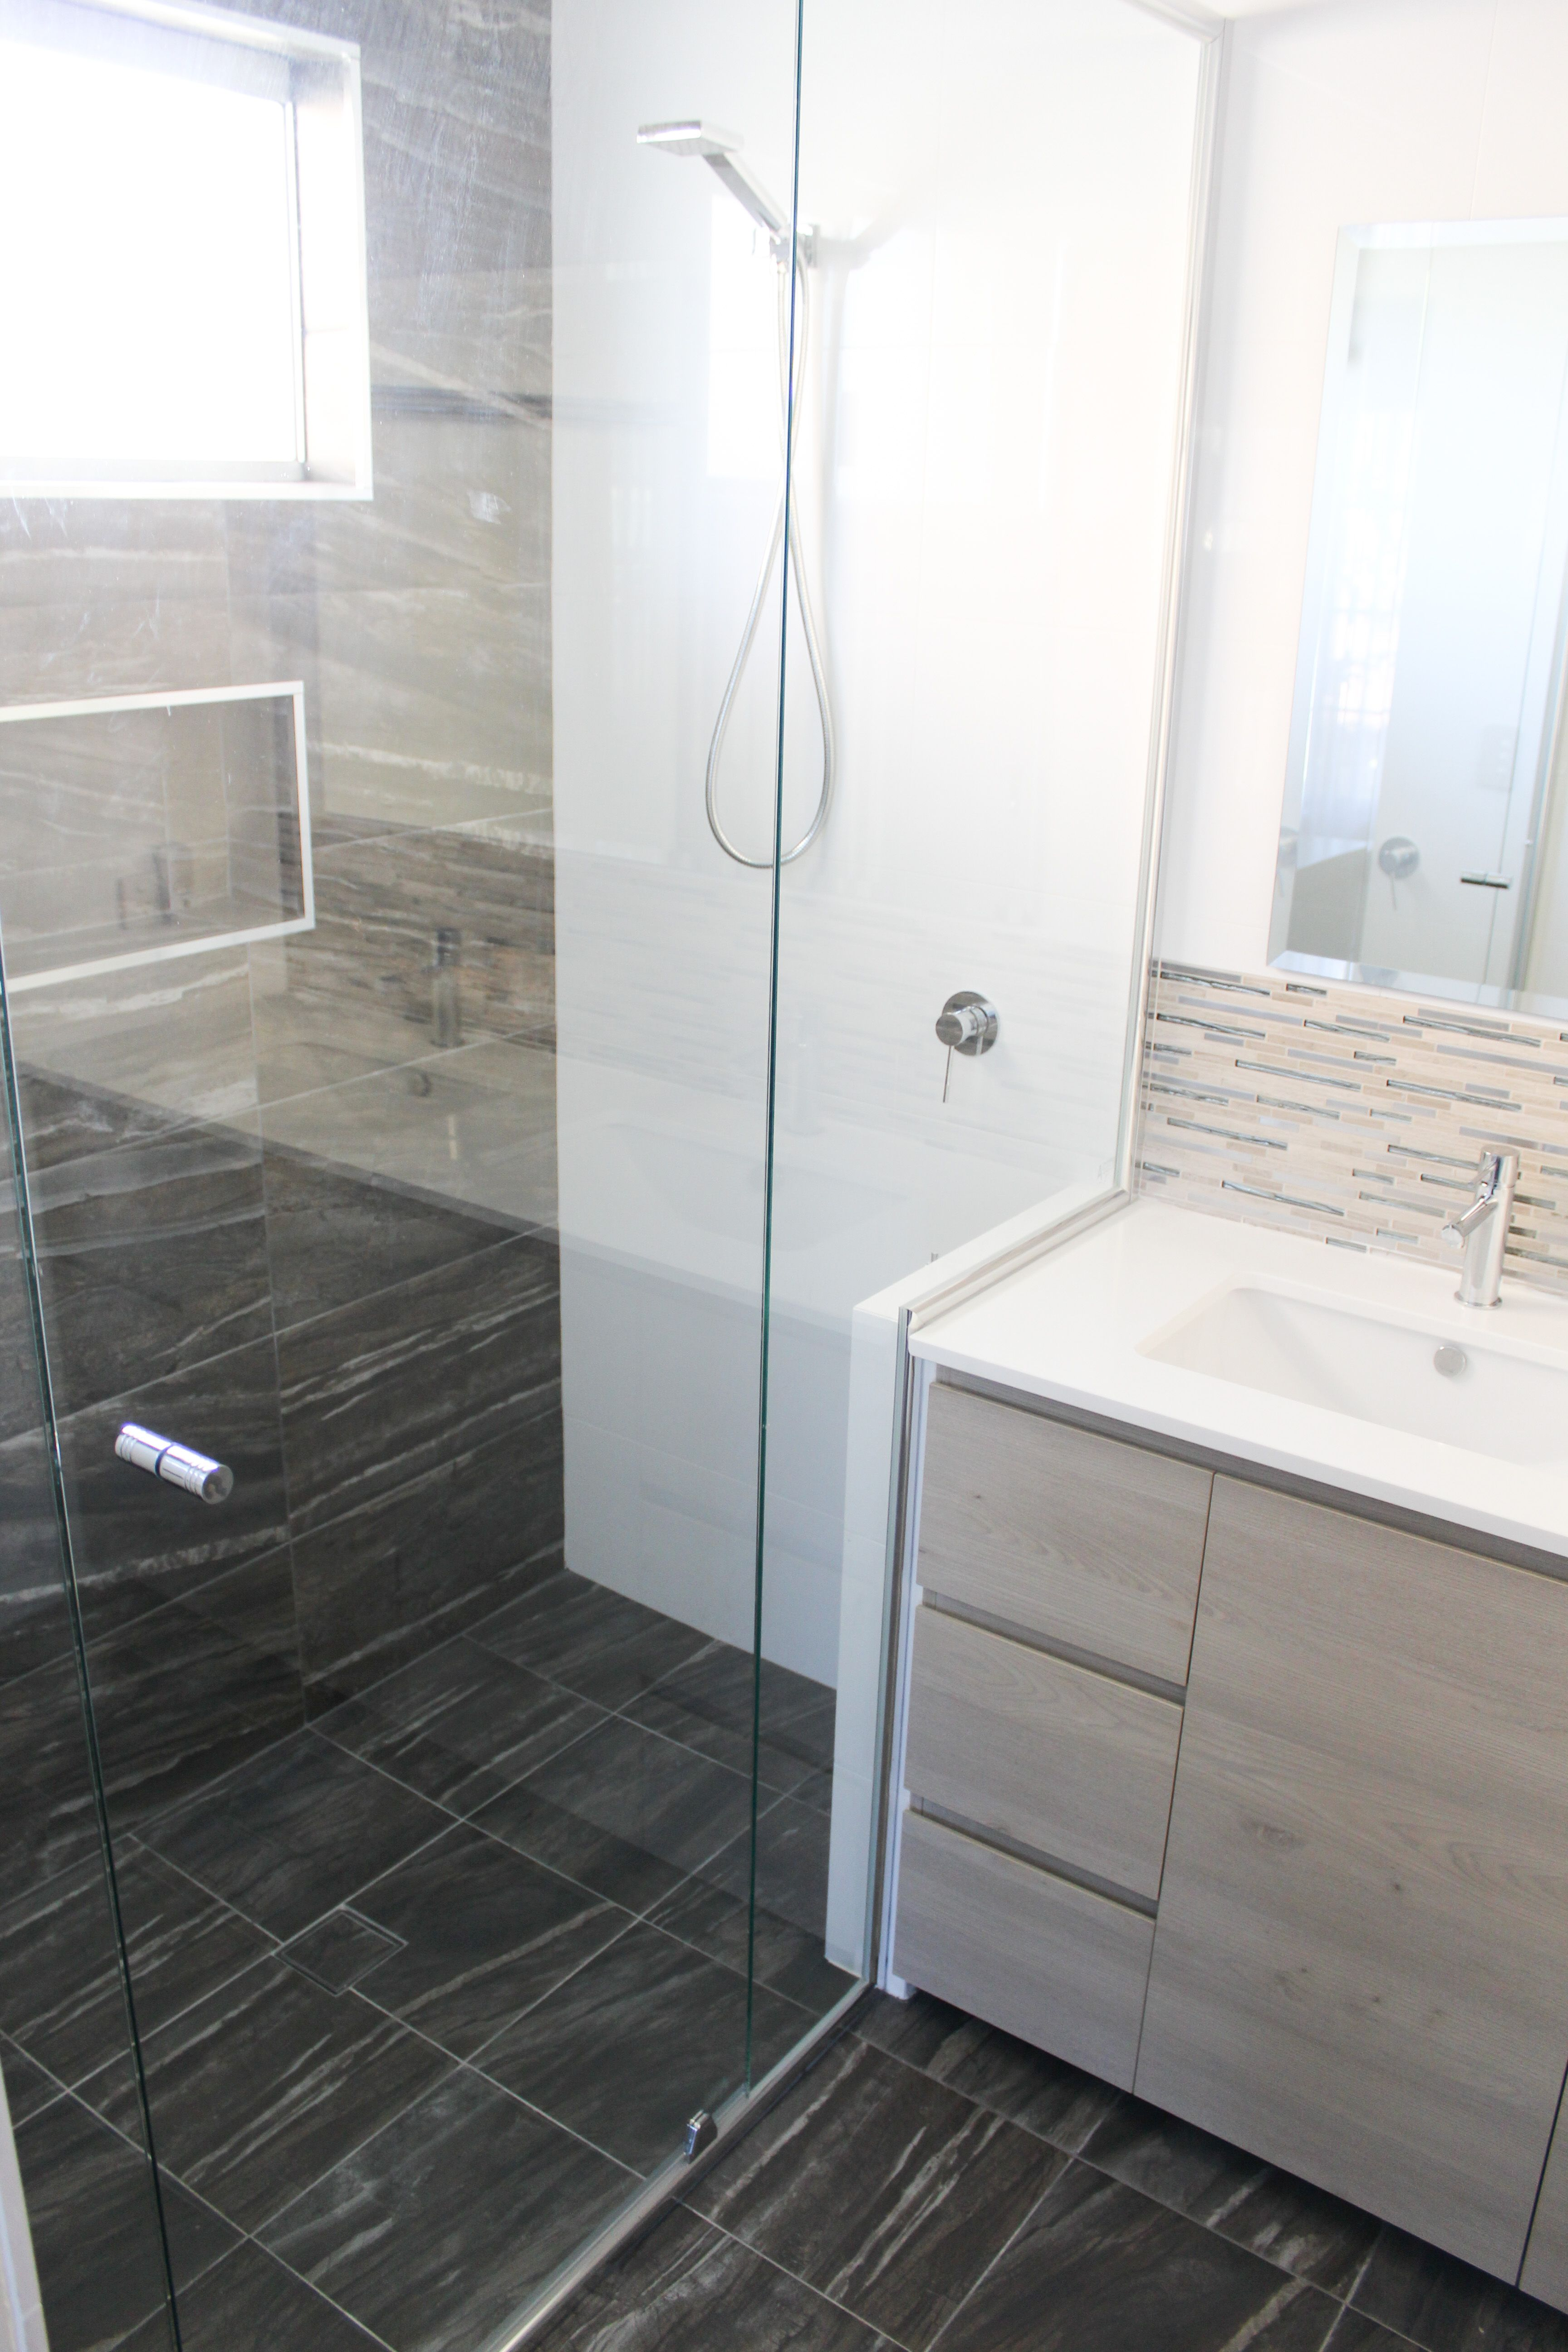 Wall To Shower Screen Semi Frameless Nib Wood Vanity Charcoal Floor White Walls Bathroom Byford Renovation On